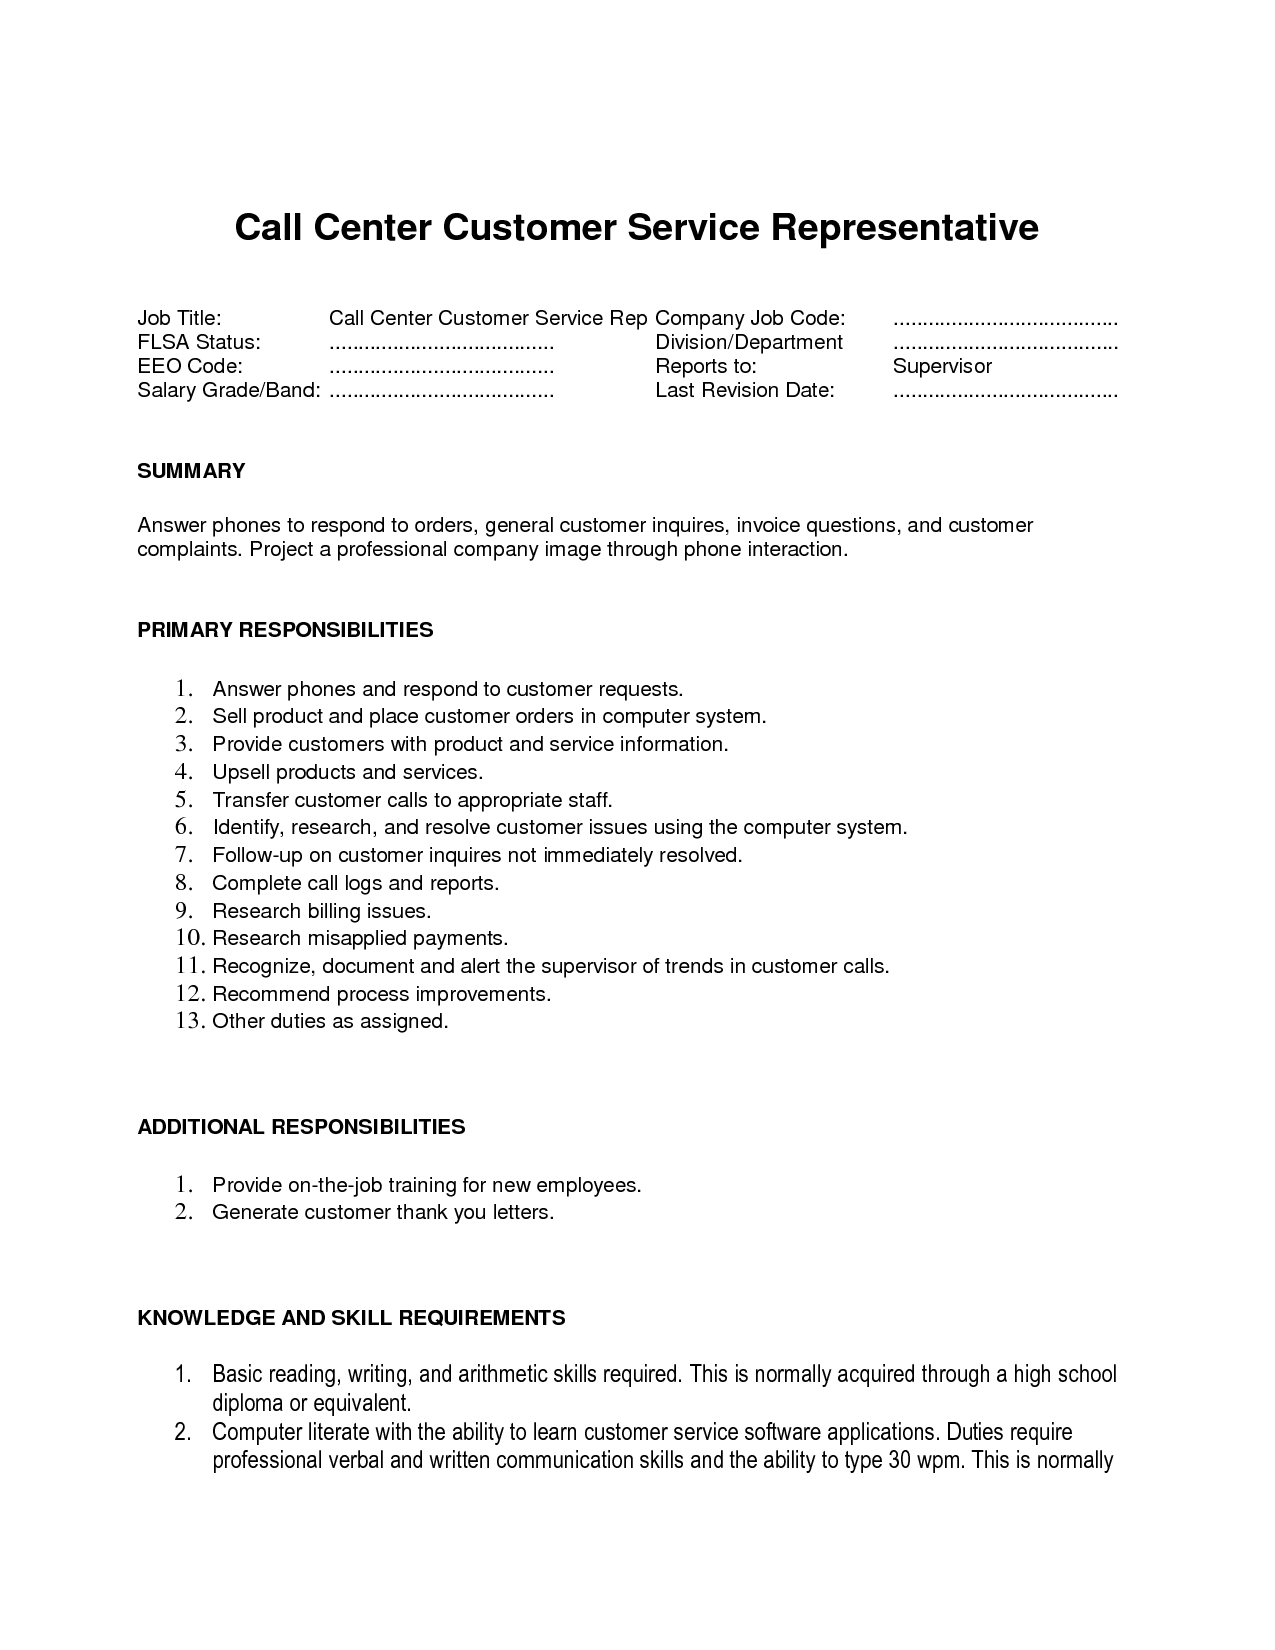 Call Center Agent Job Description Jianbochen Cover Letter Customer